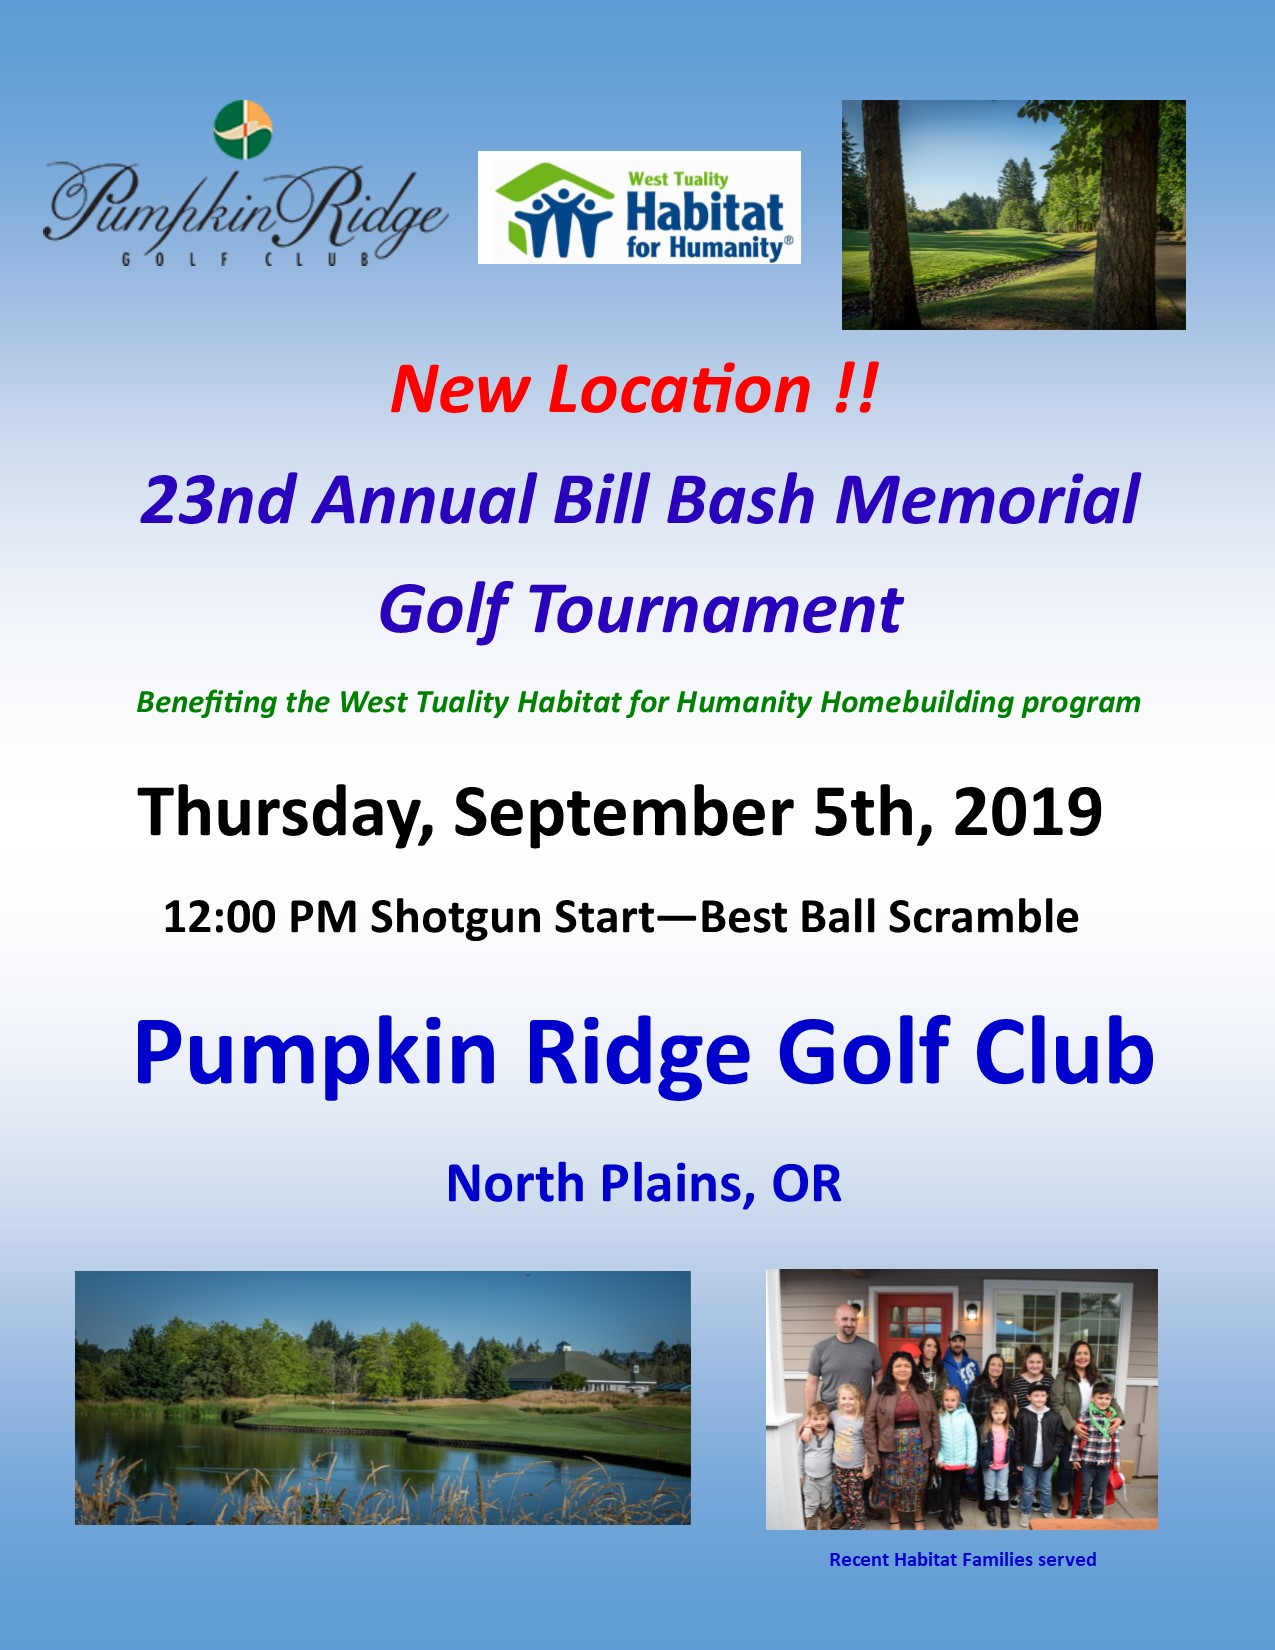 Golf Tournament Flyer 8 x 11 2019.jpg